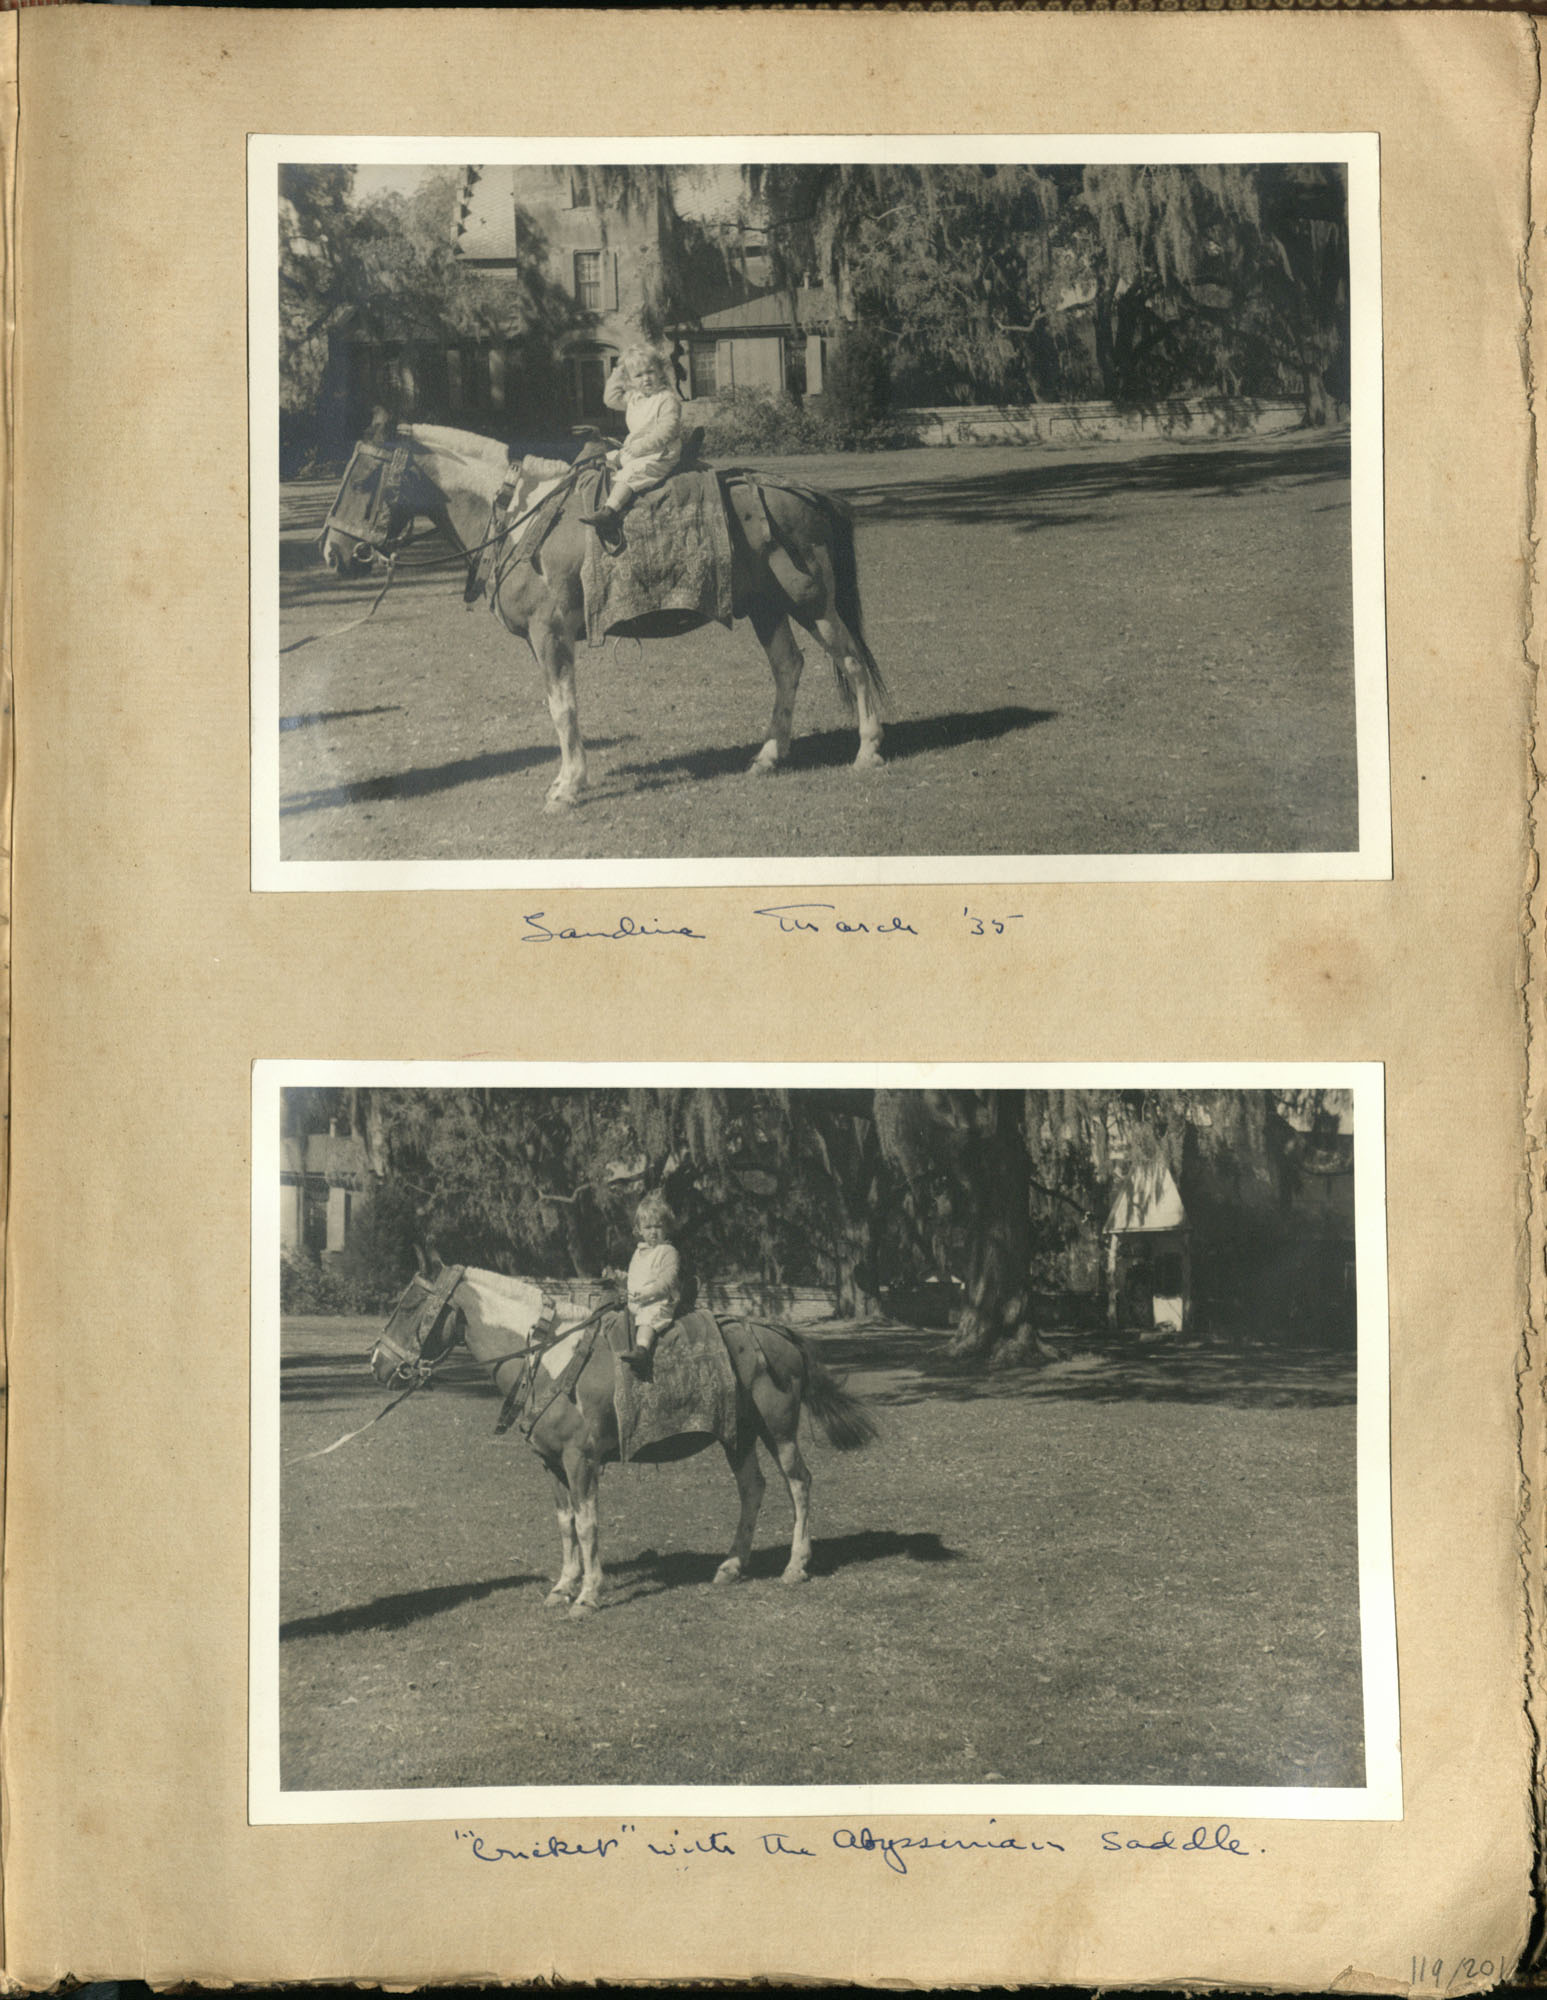 Early Medway and travels album, 1929-1937, page 119